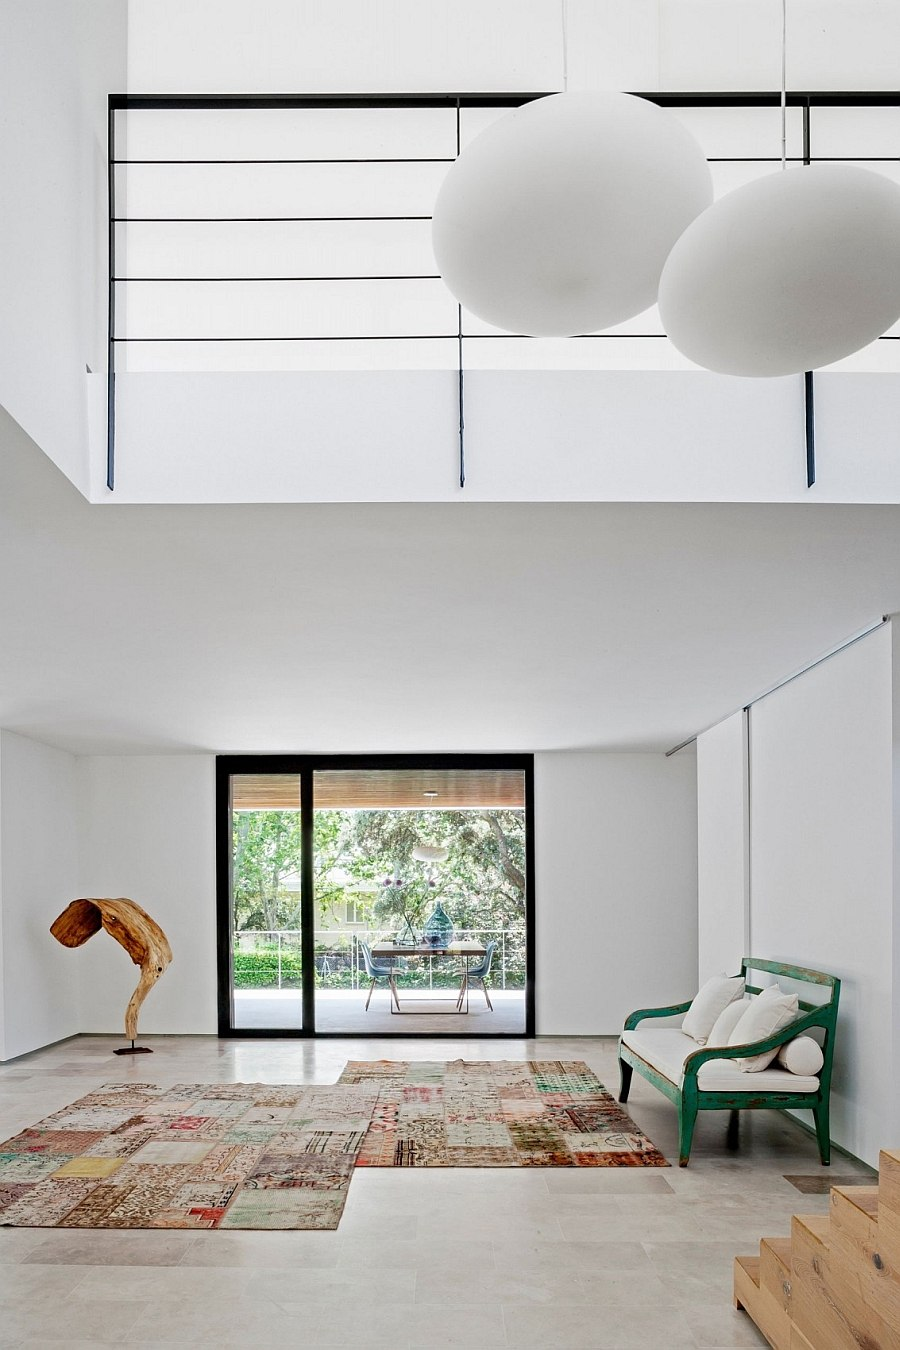 A blend of eclectic decor adds color to the contemporary space